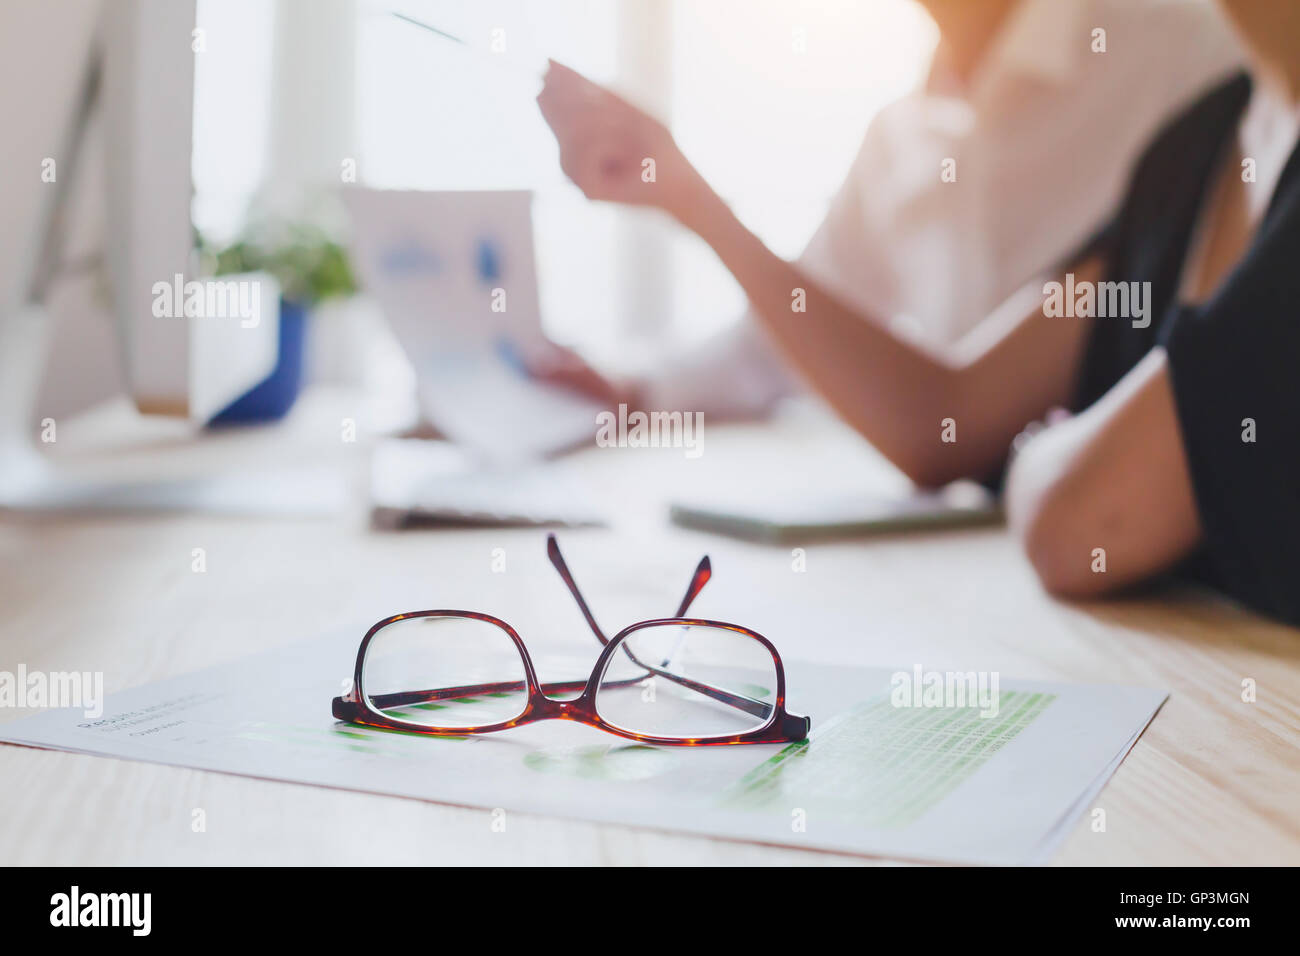 business team discussing project near computer, focus on glasses on foreground - Stock Image